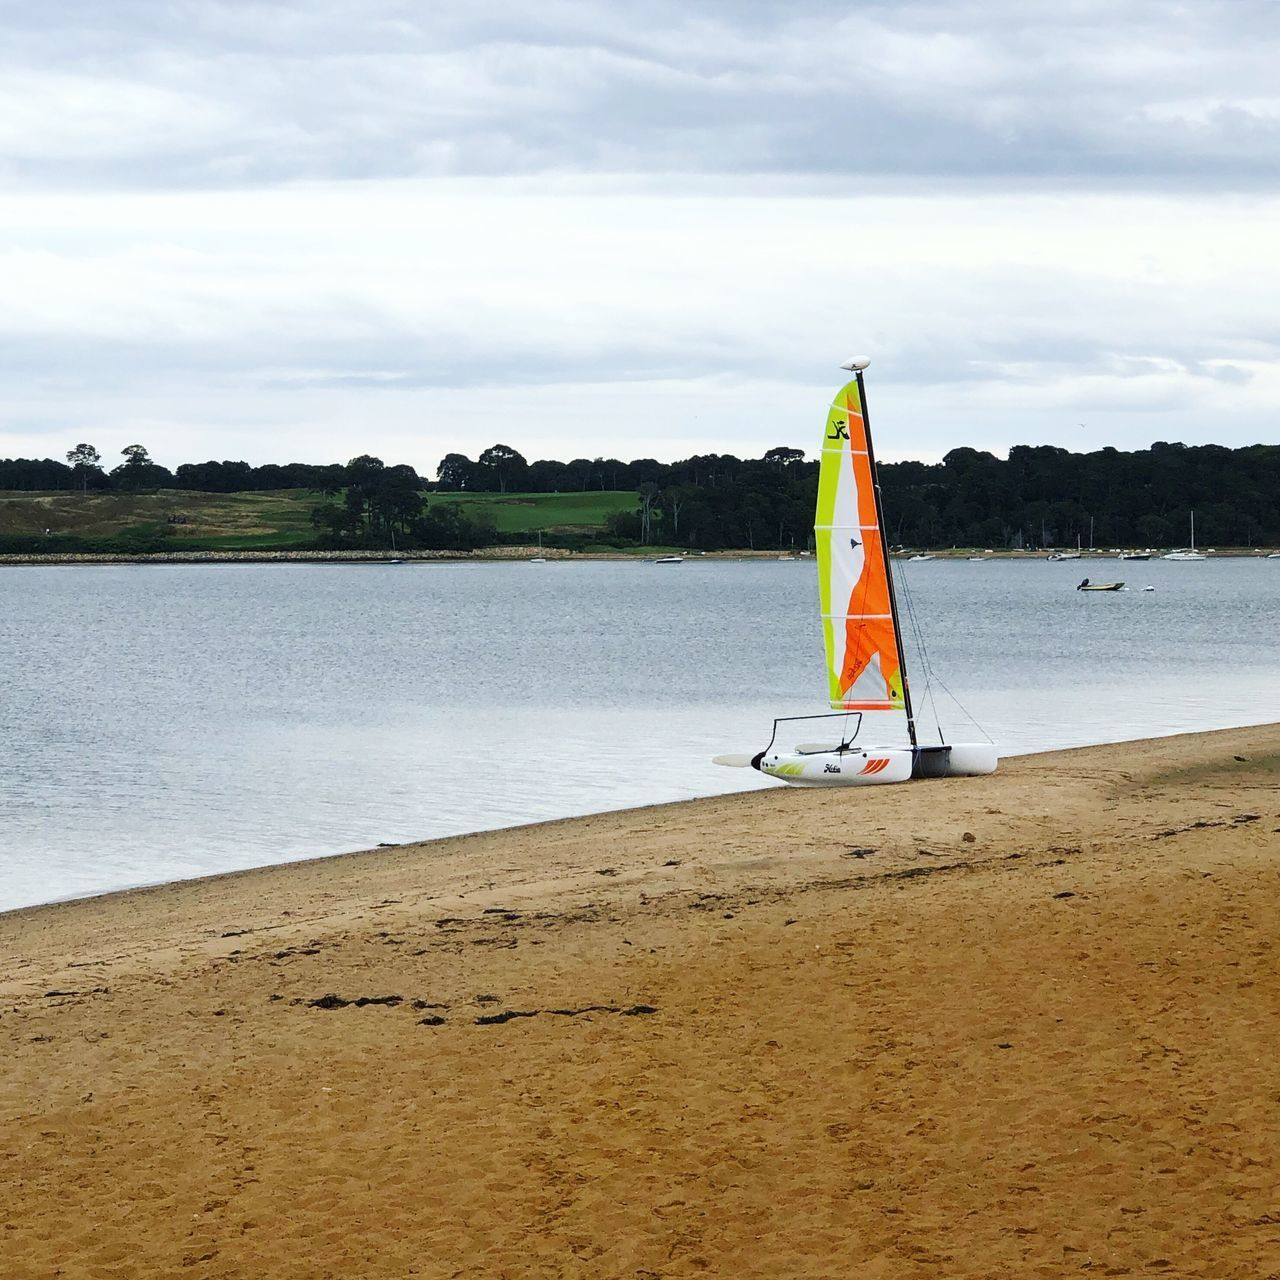 water, sky, nature, sea, cloud - sky, day, beach, land, scenics - nature, flag, beauty in nature, no people, tranquility, tranquil scene, plant, outdoors, patriotism, non-urban scene, nautical vessel, sailboat